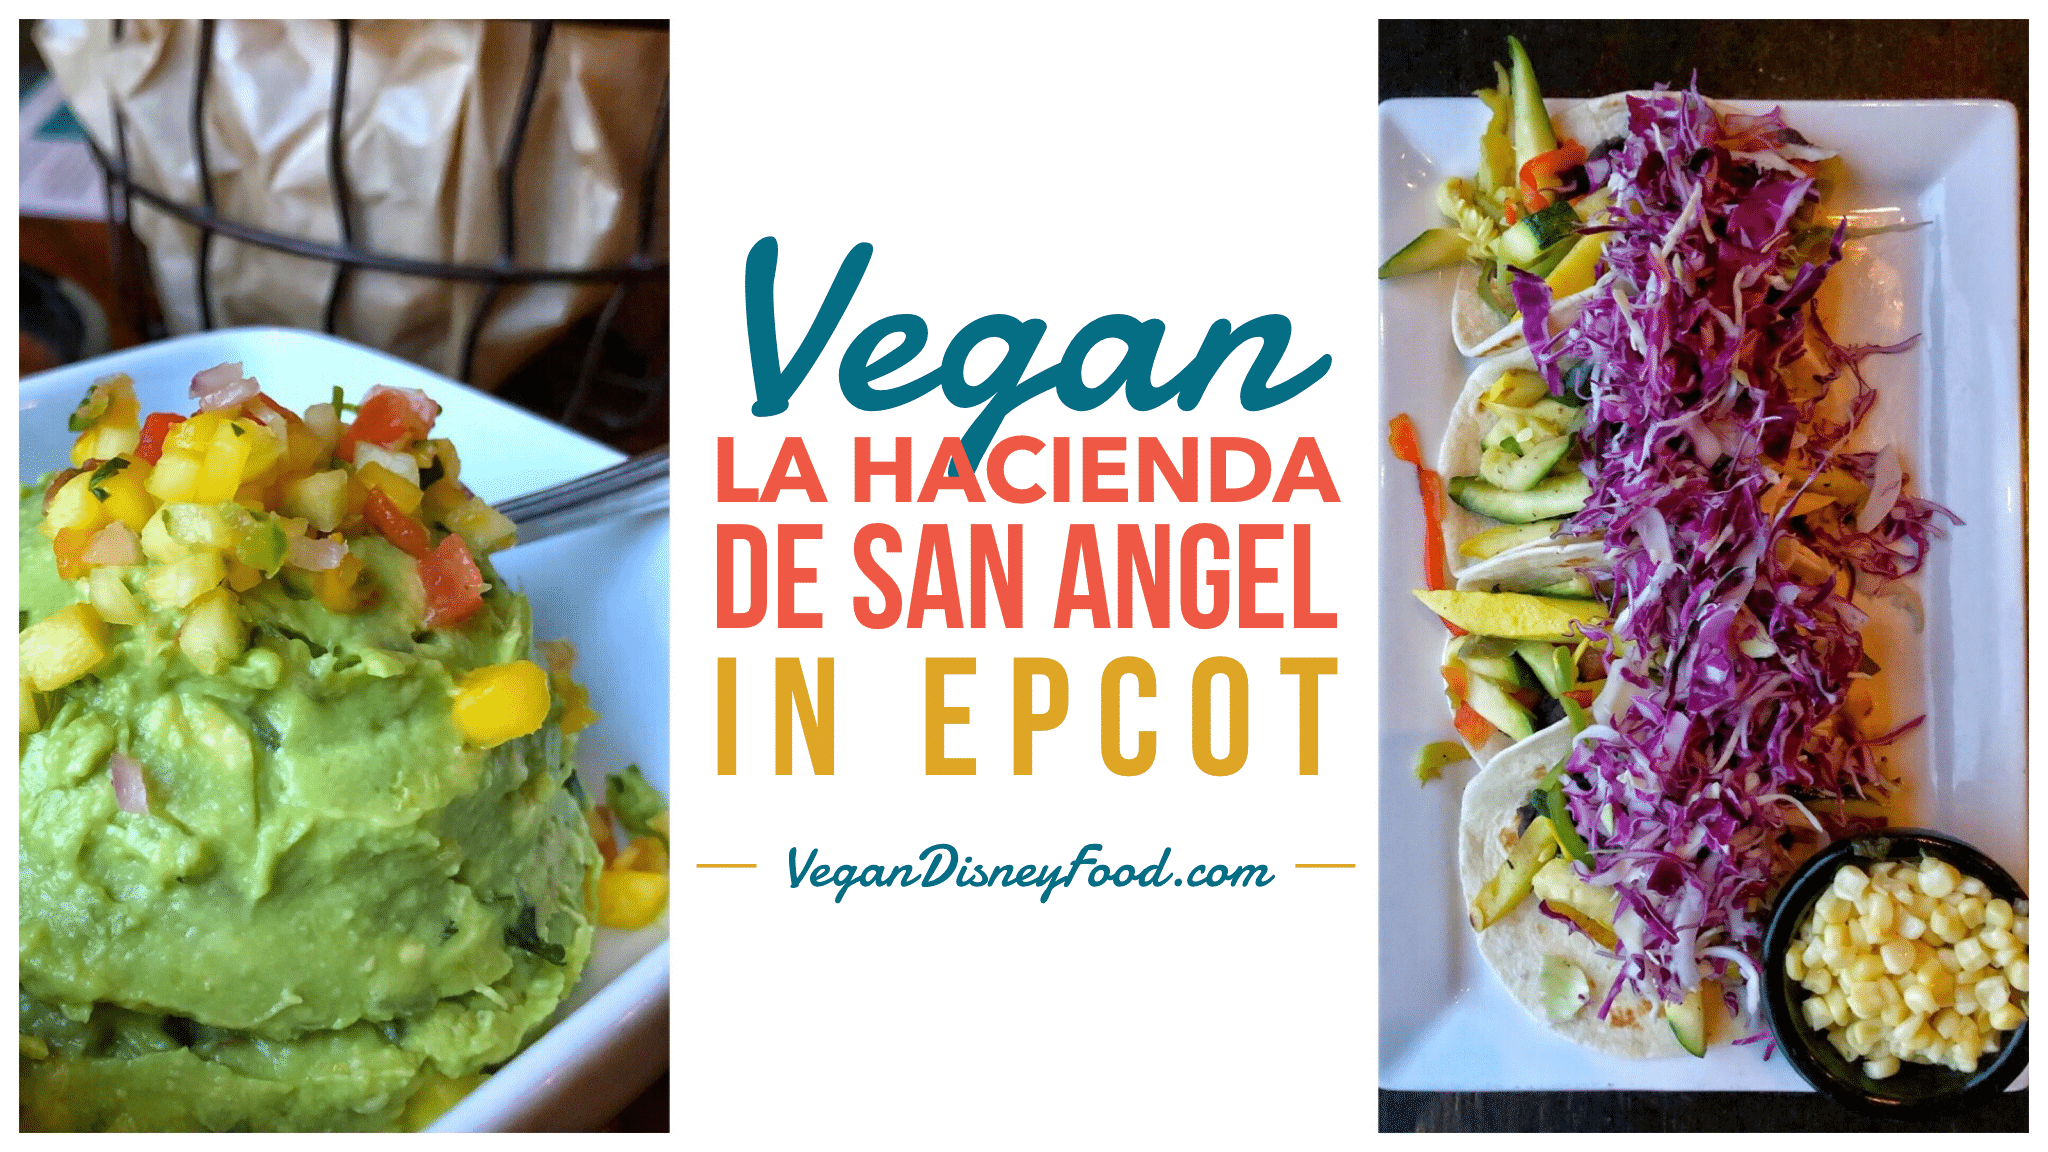 A Comprehensive Review of all the vegan options at La Hacienda de San Angel in Epcot's Mexico Pavilion at Walt Disney World